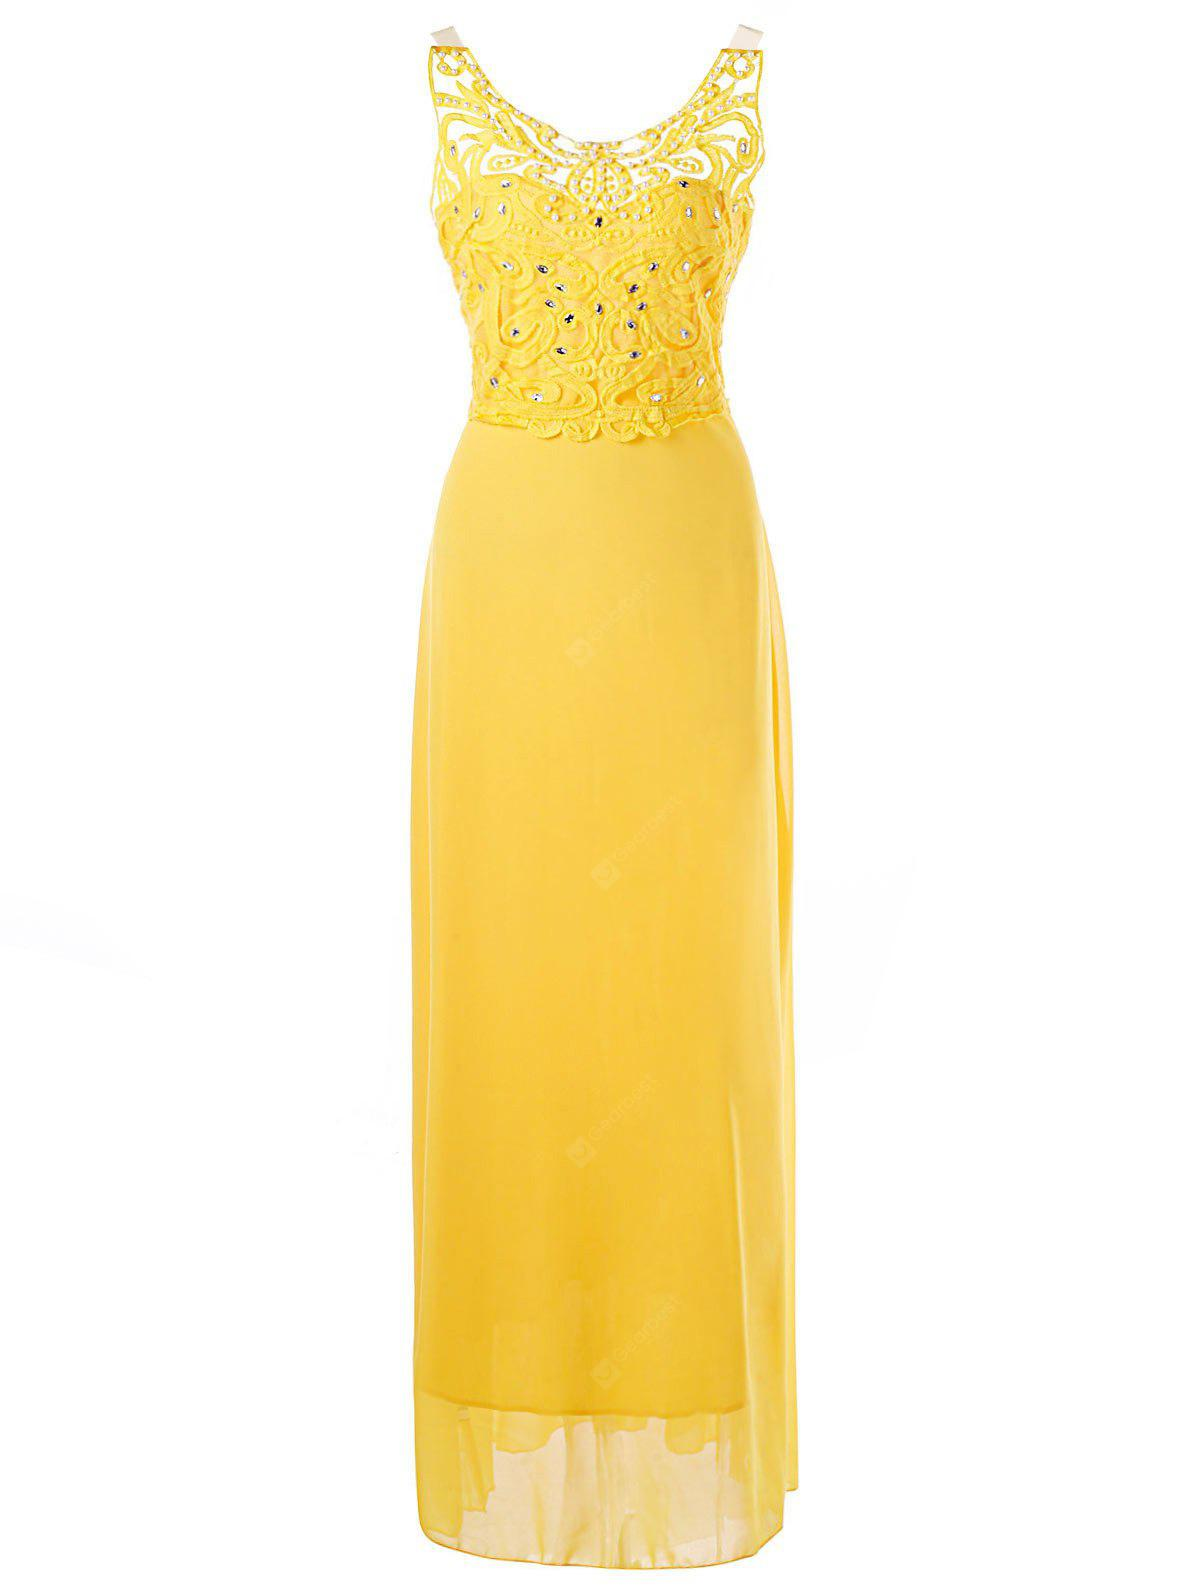 Backless Beaded Applique Prom Dress